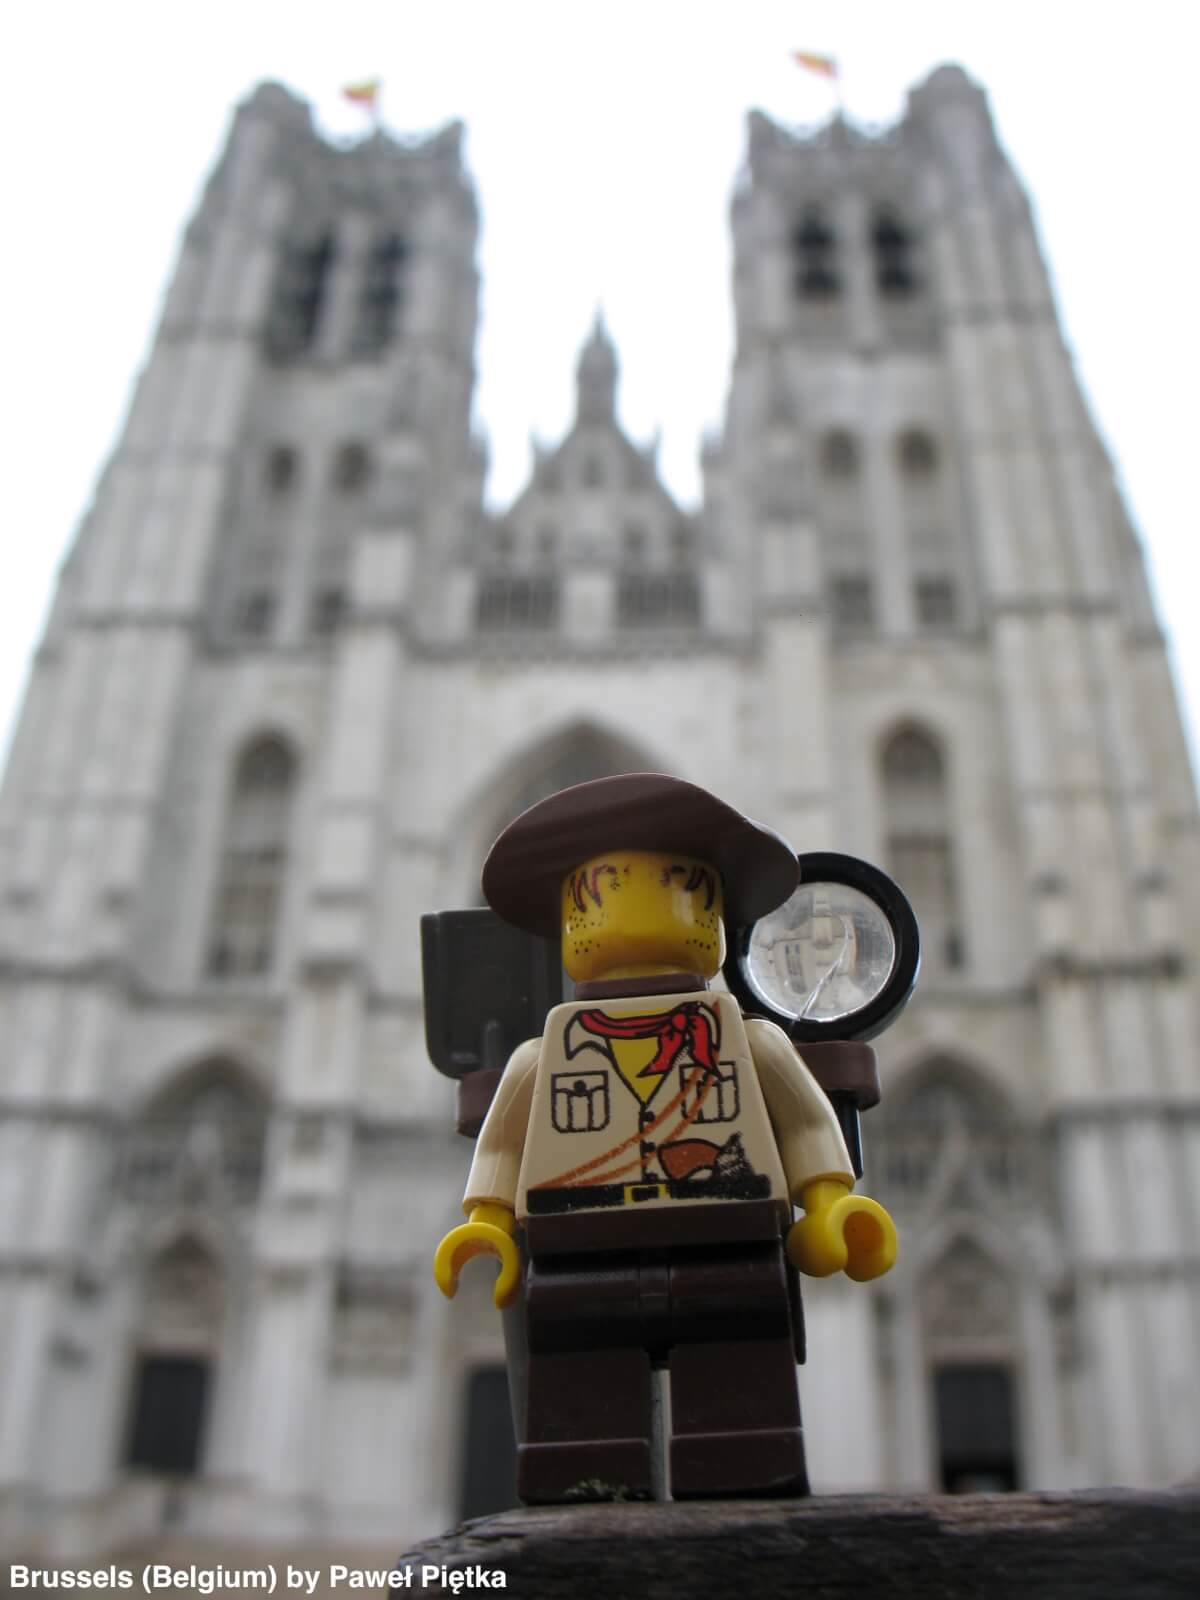 Brussels (Belgium) - Cathedral of St Michael and St Gudula